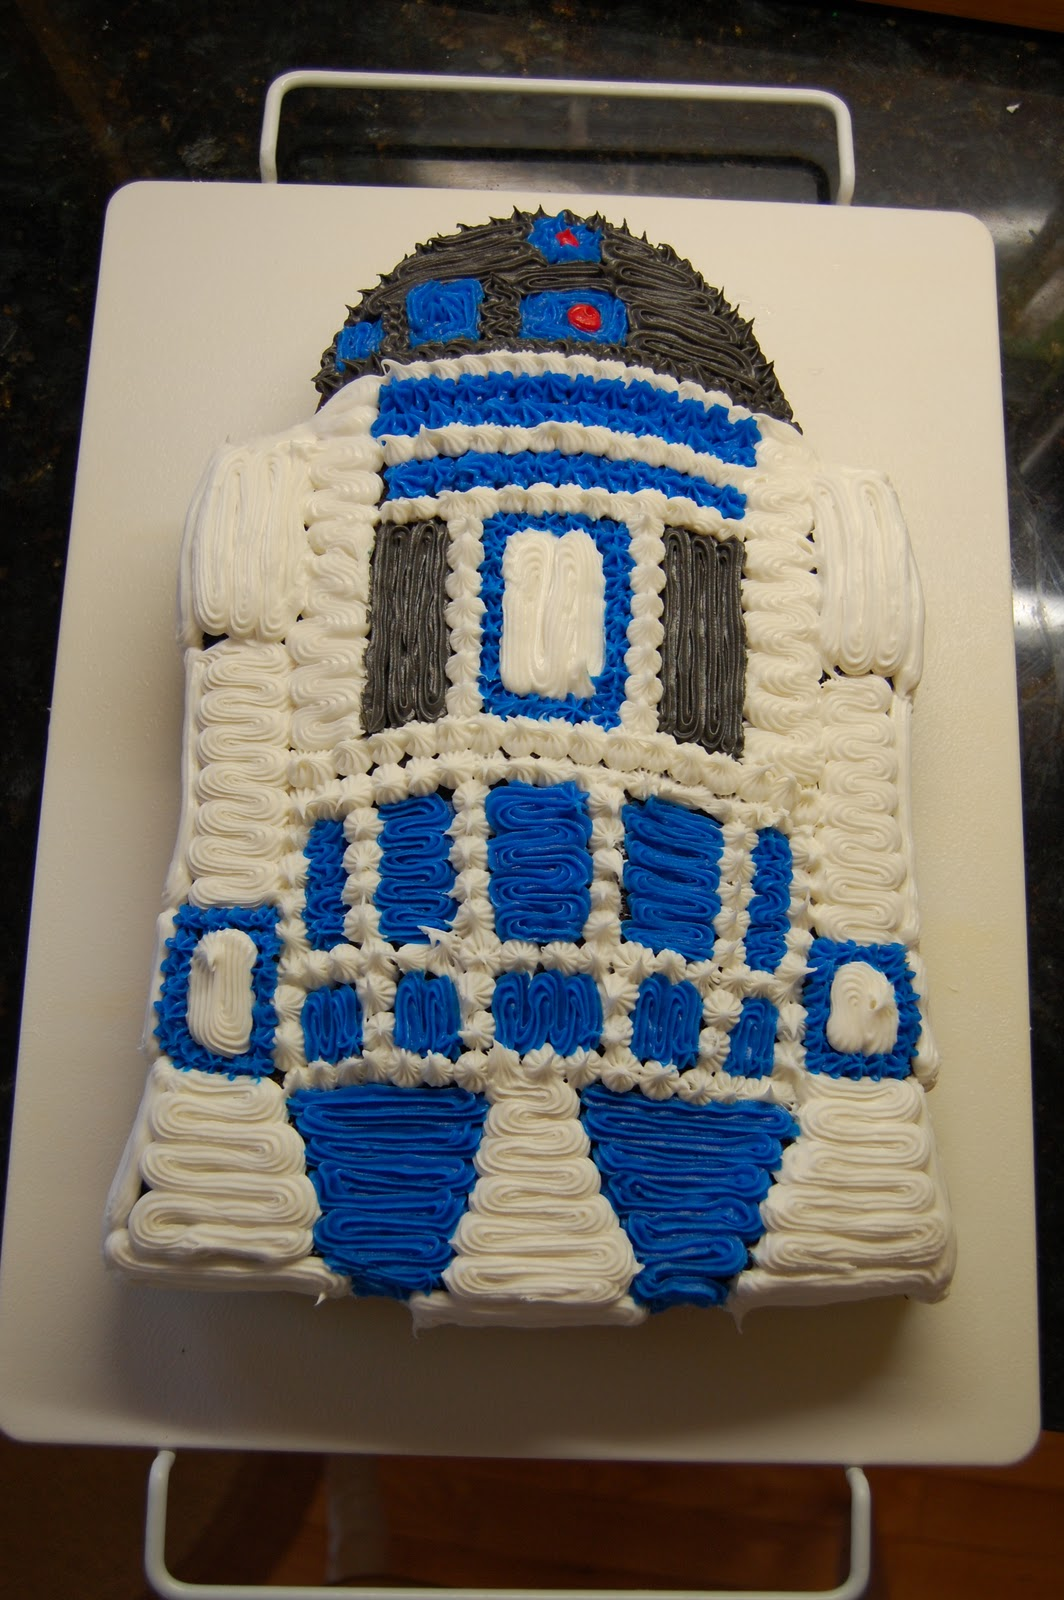 52 Cakes The Great Cake Experiment R2d2 Birthday Cake